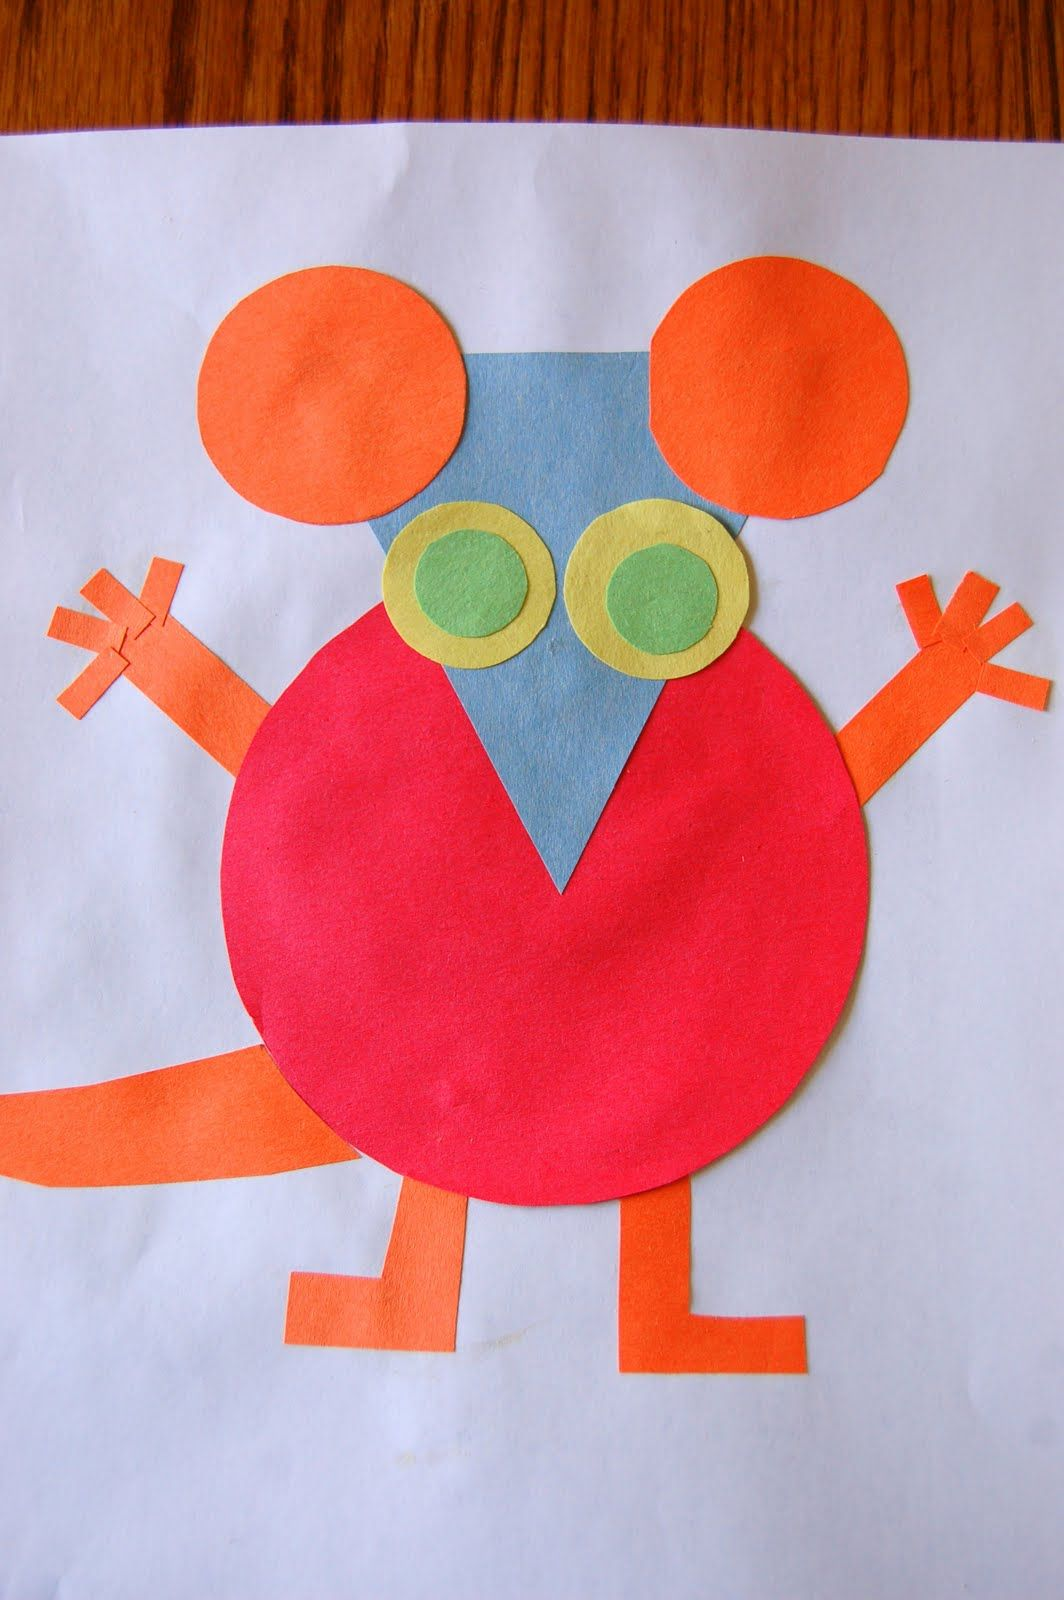 Worksheet Activities For Shapes For Kindergarten circle shape activities shapes circles pinterest use and colors to create an animal fine motor skills through cutting gluing you could also incorporate math with the